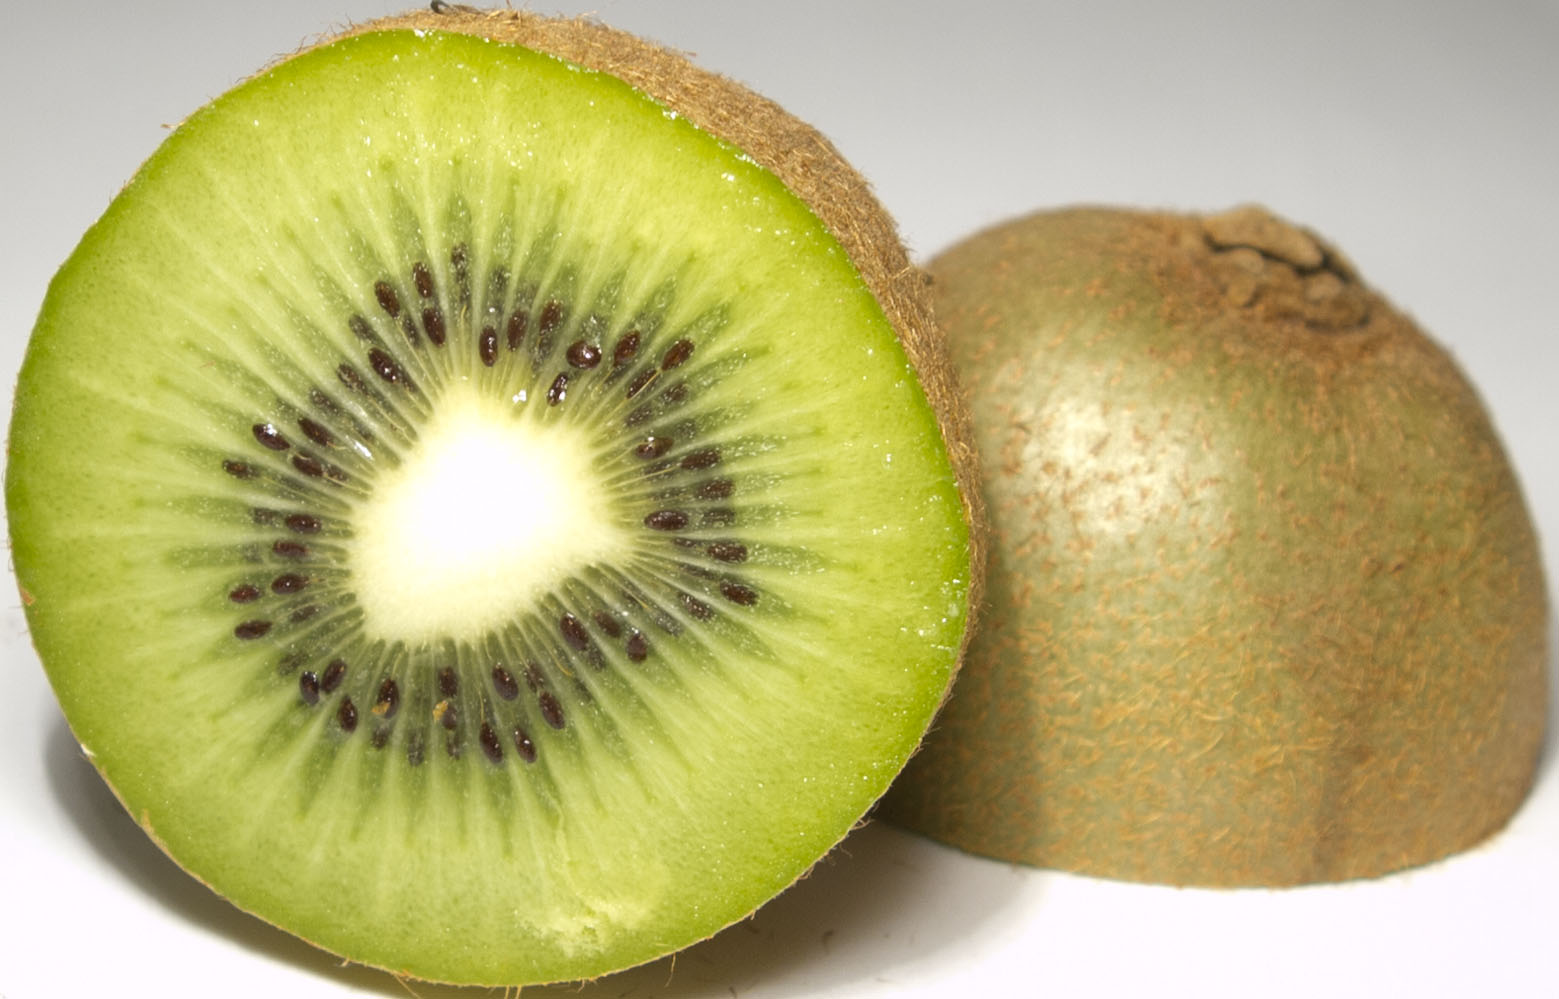 File:Kiwifruit halved.jpg